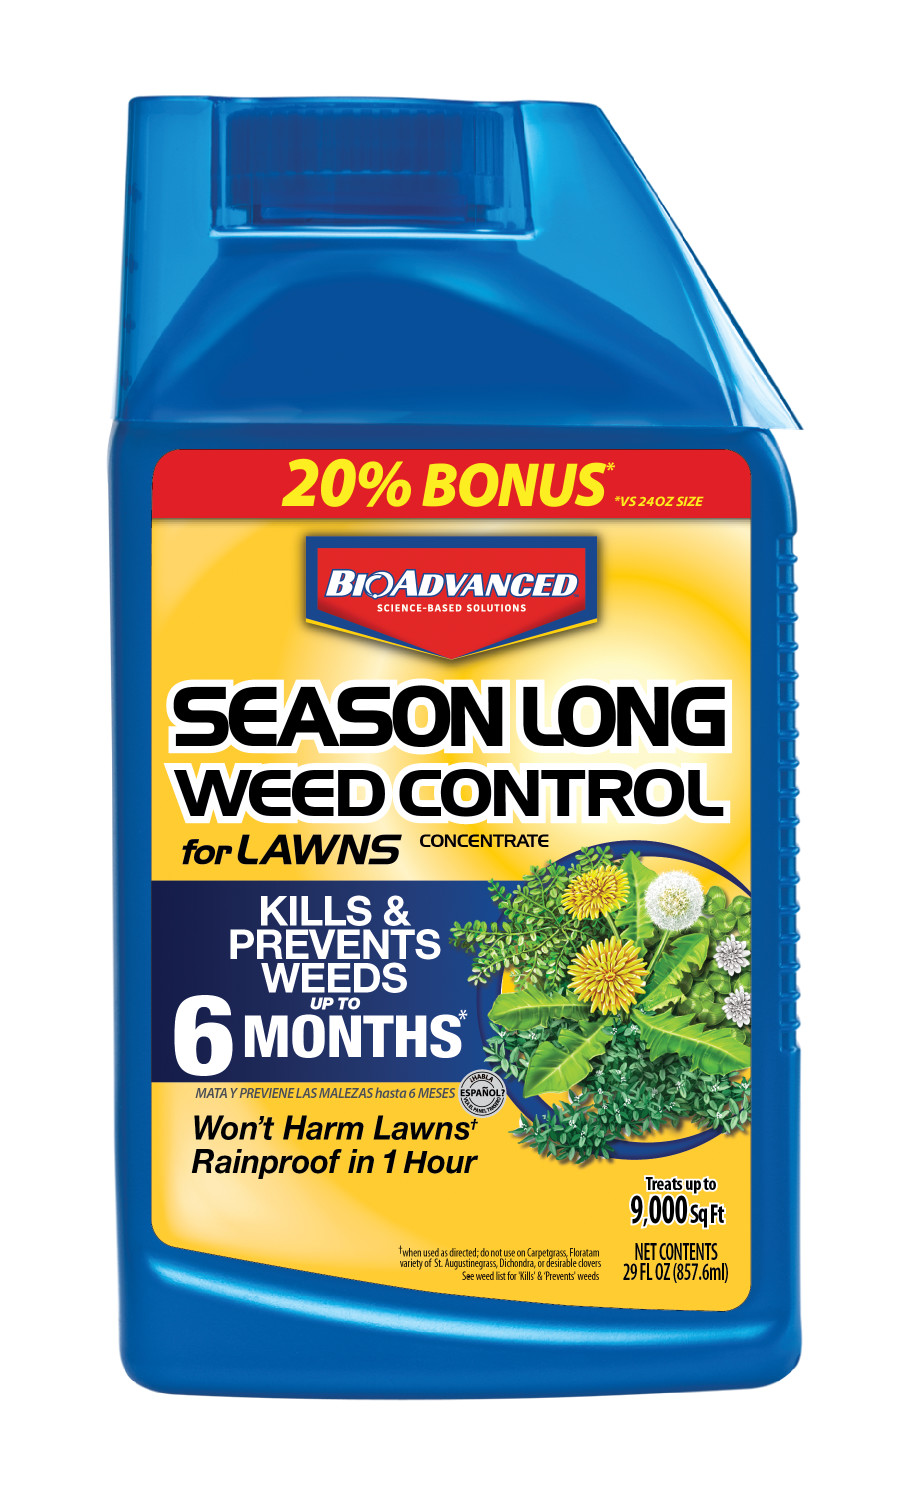 Bayer Season Long Weed Control for Lawns Concentrate 8ea/24 oz